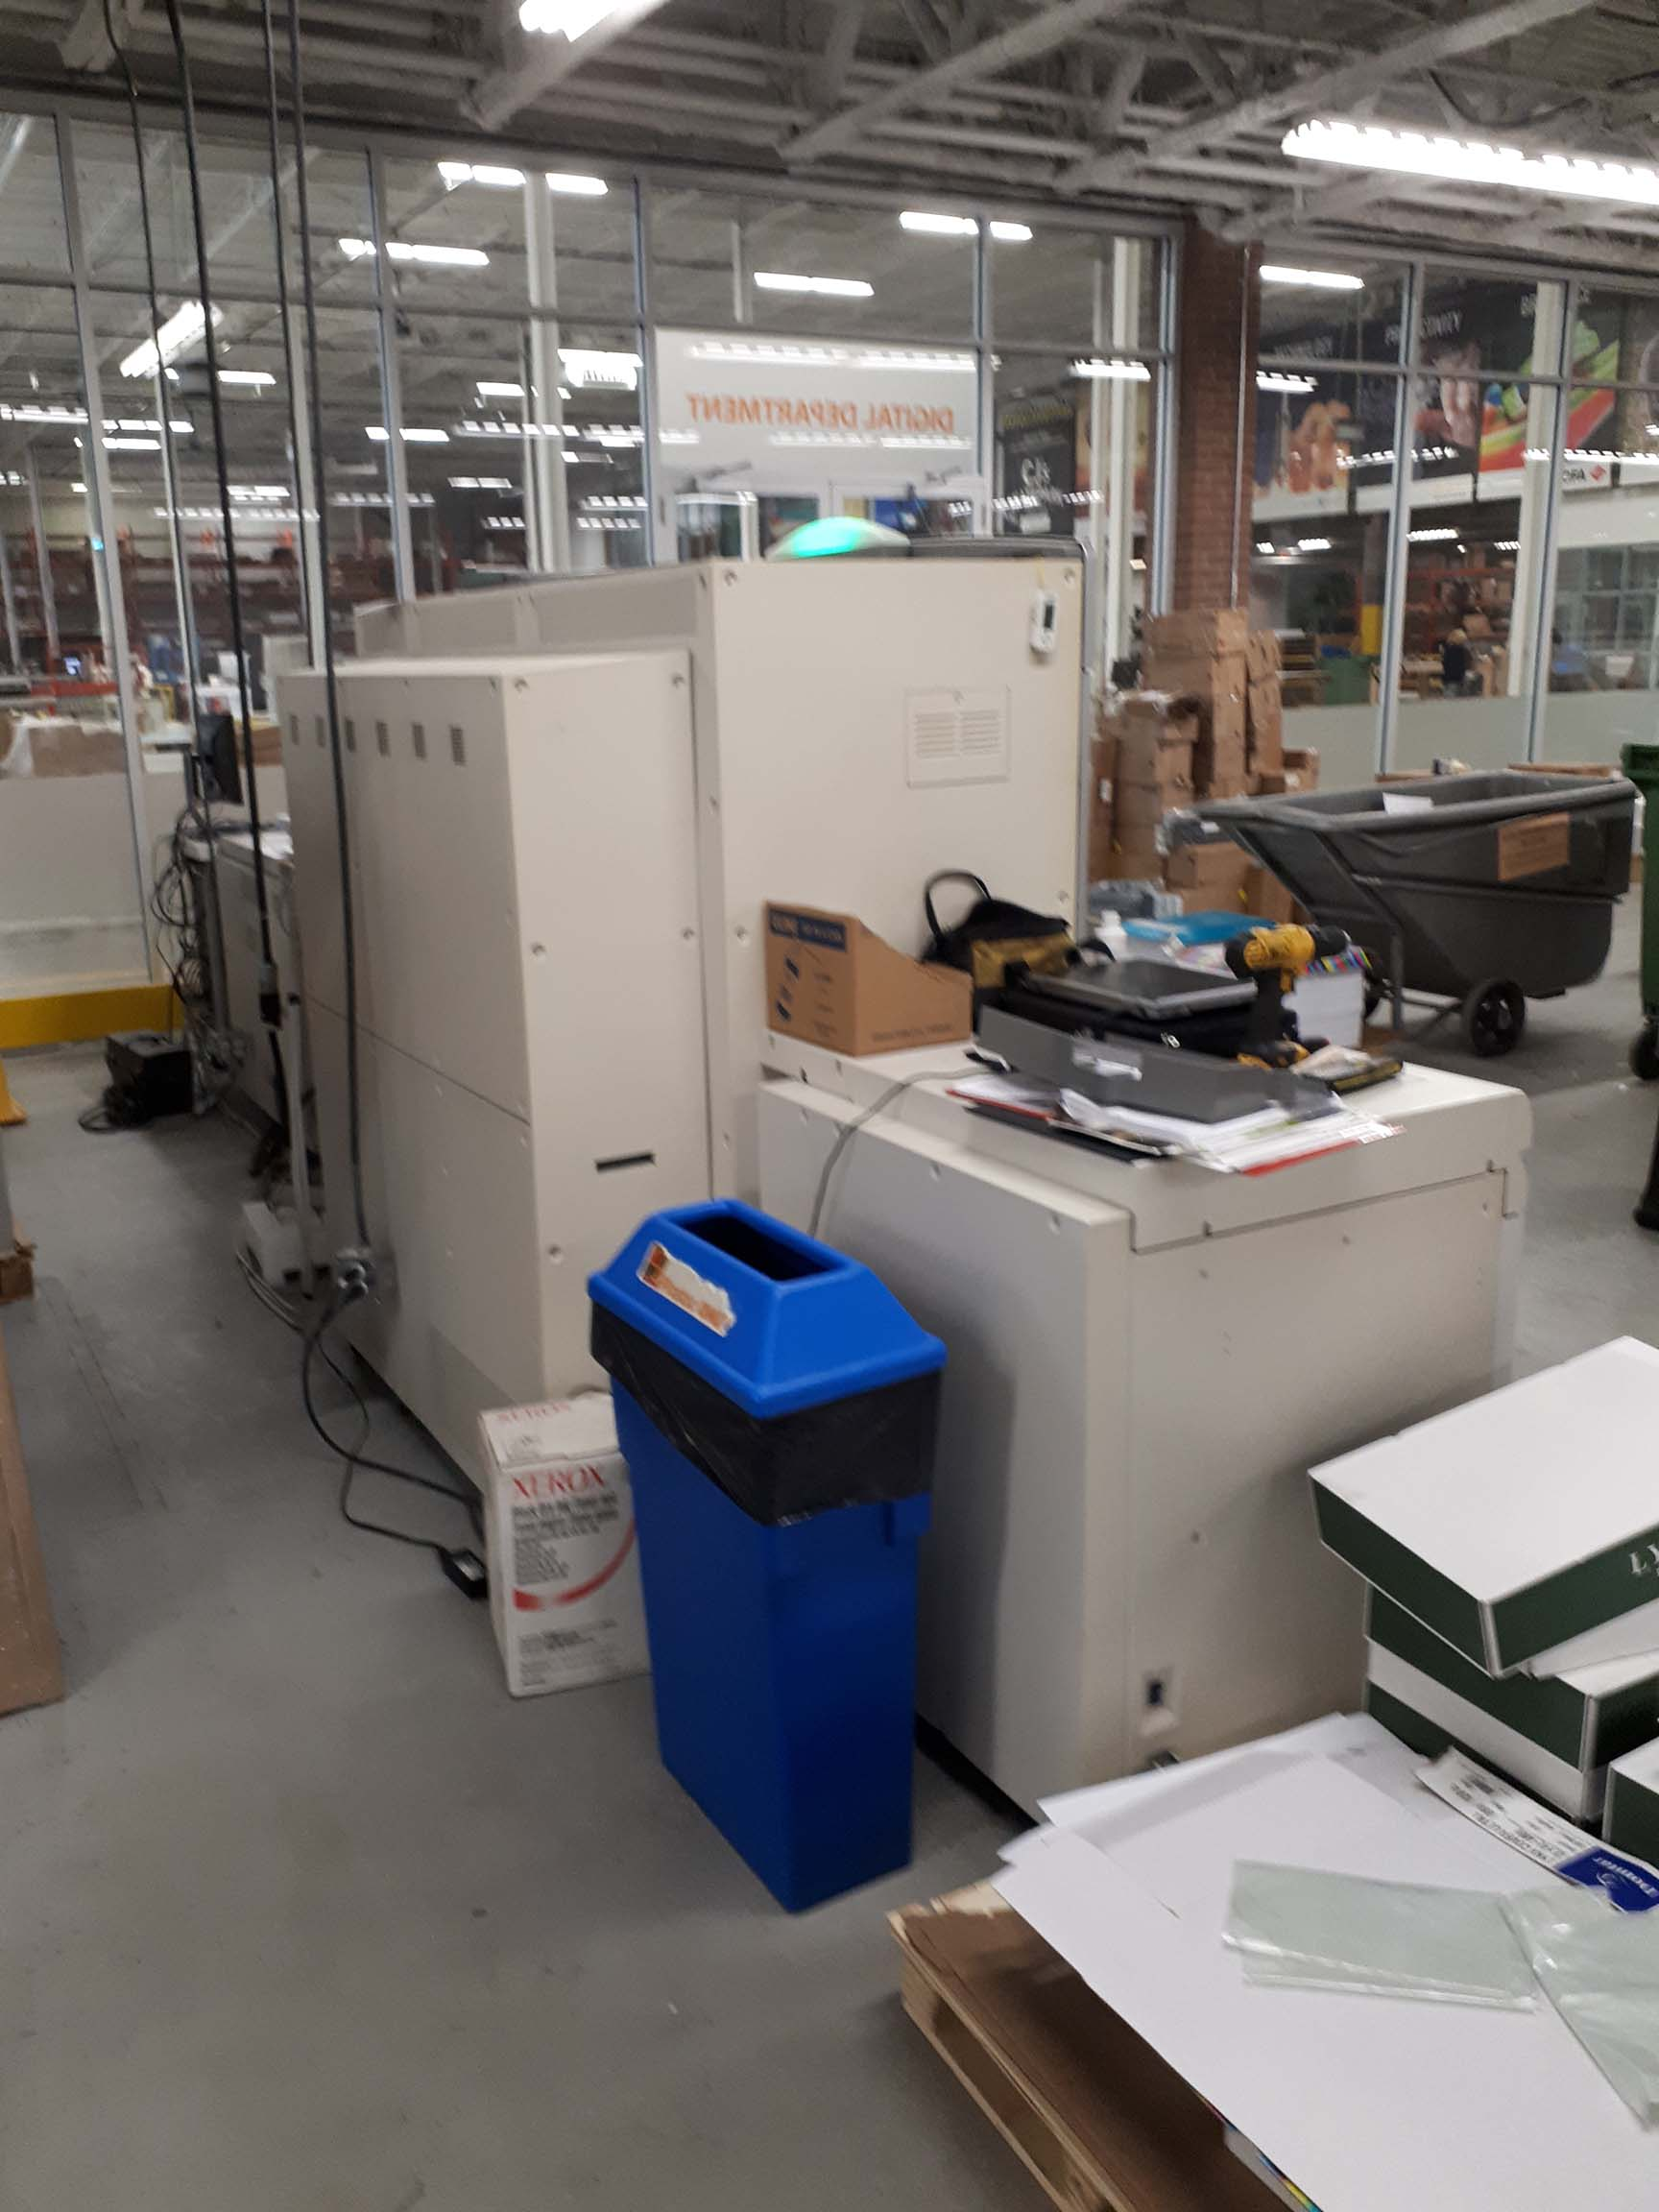 Lot 2A - FUJI XEROX COLOR 1000 PRESS - (Refurbished by Xerox (9) Months Ago)